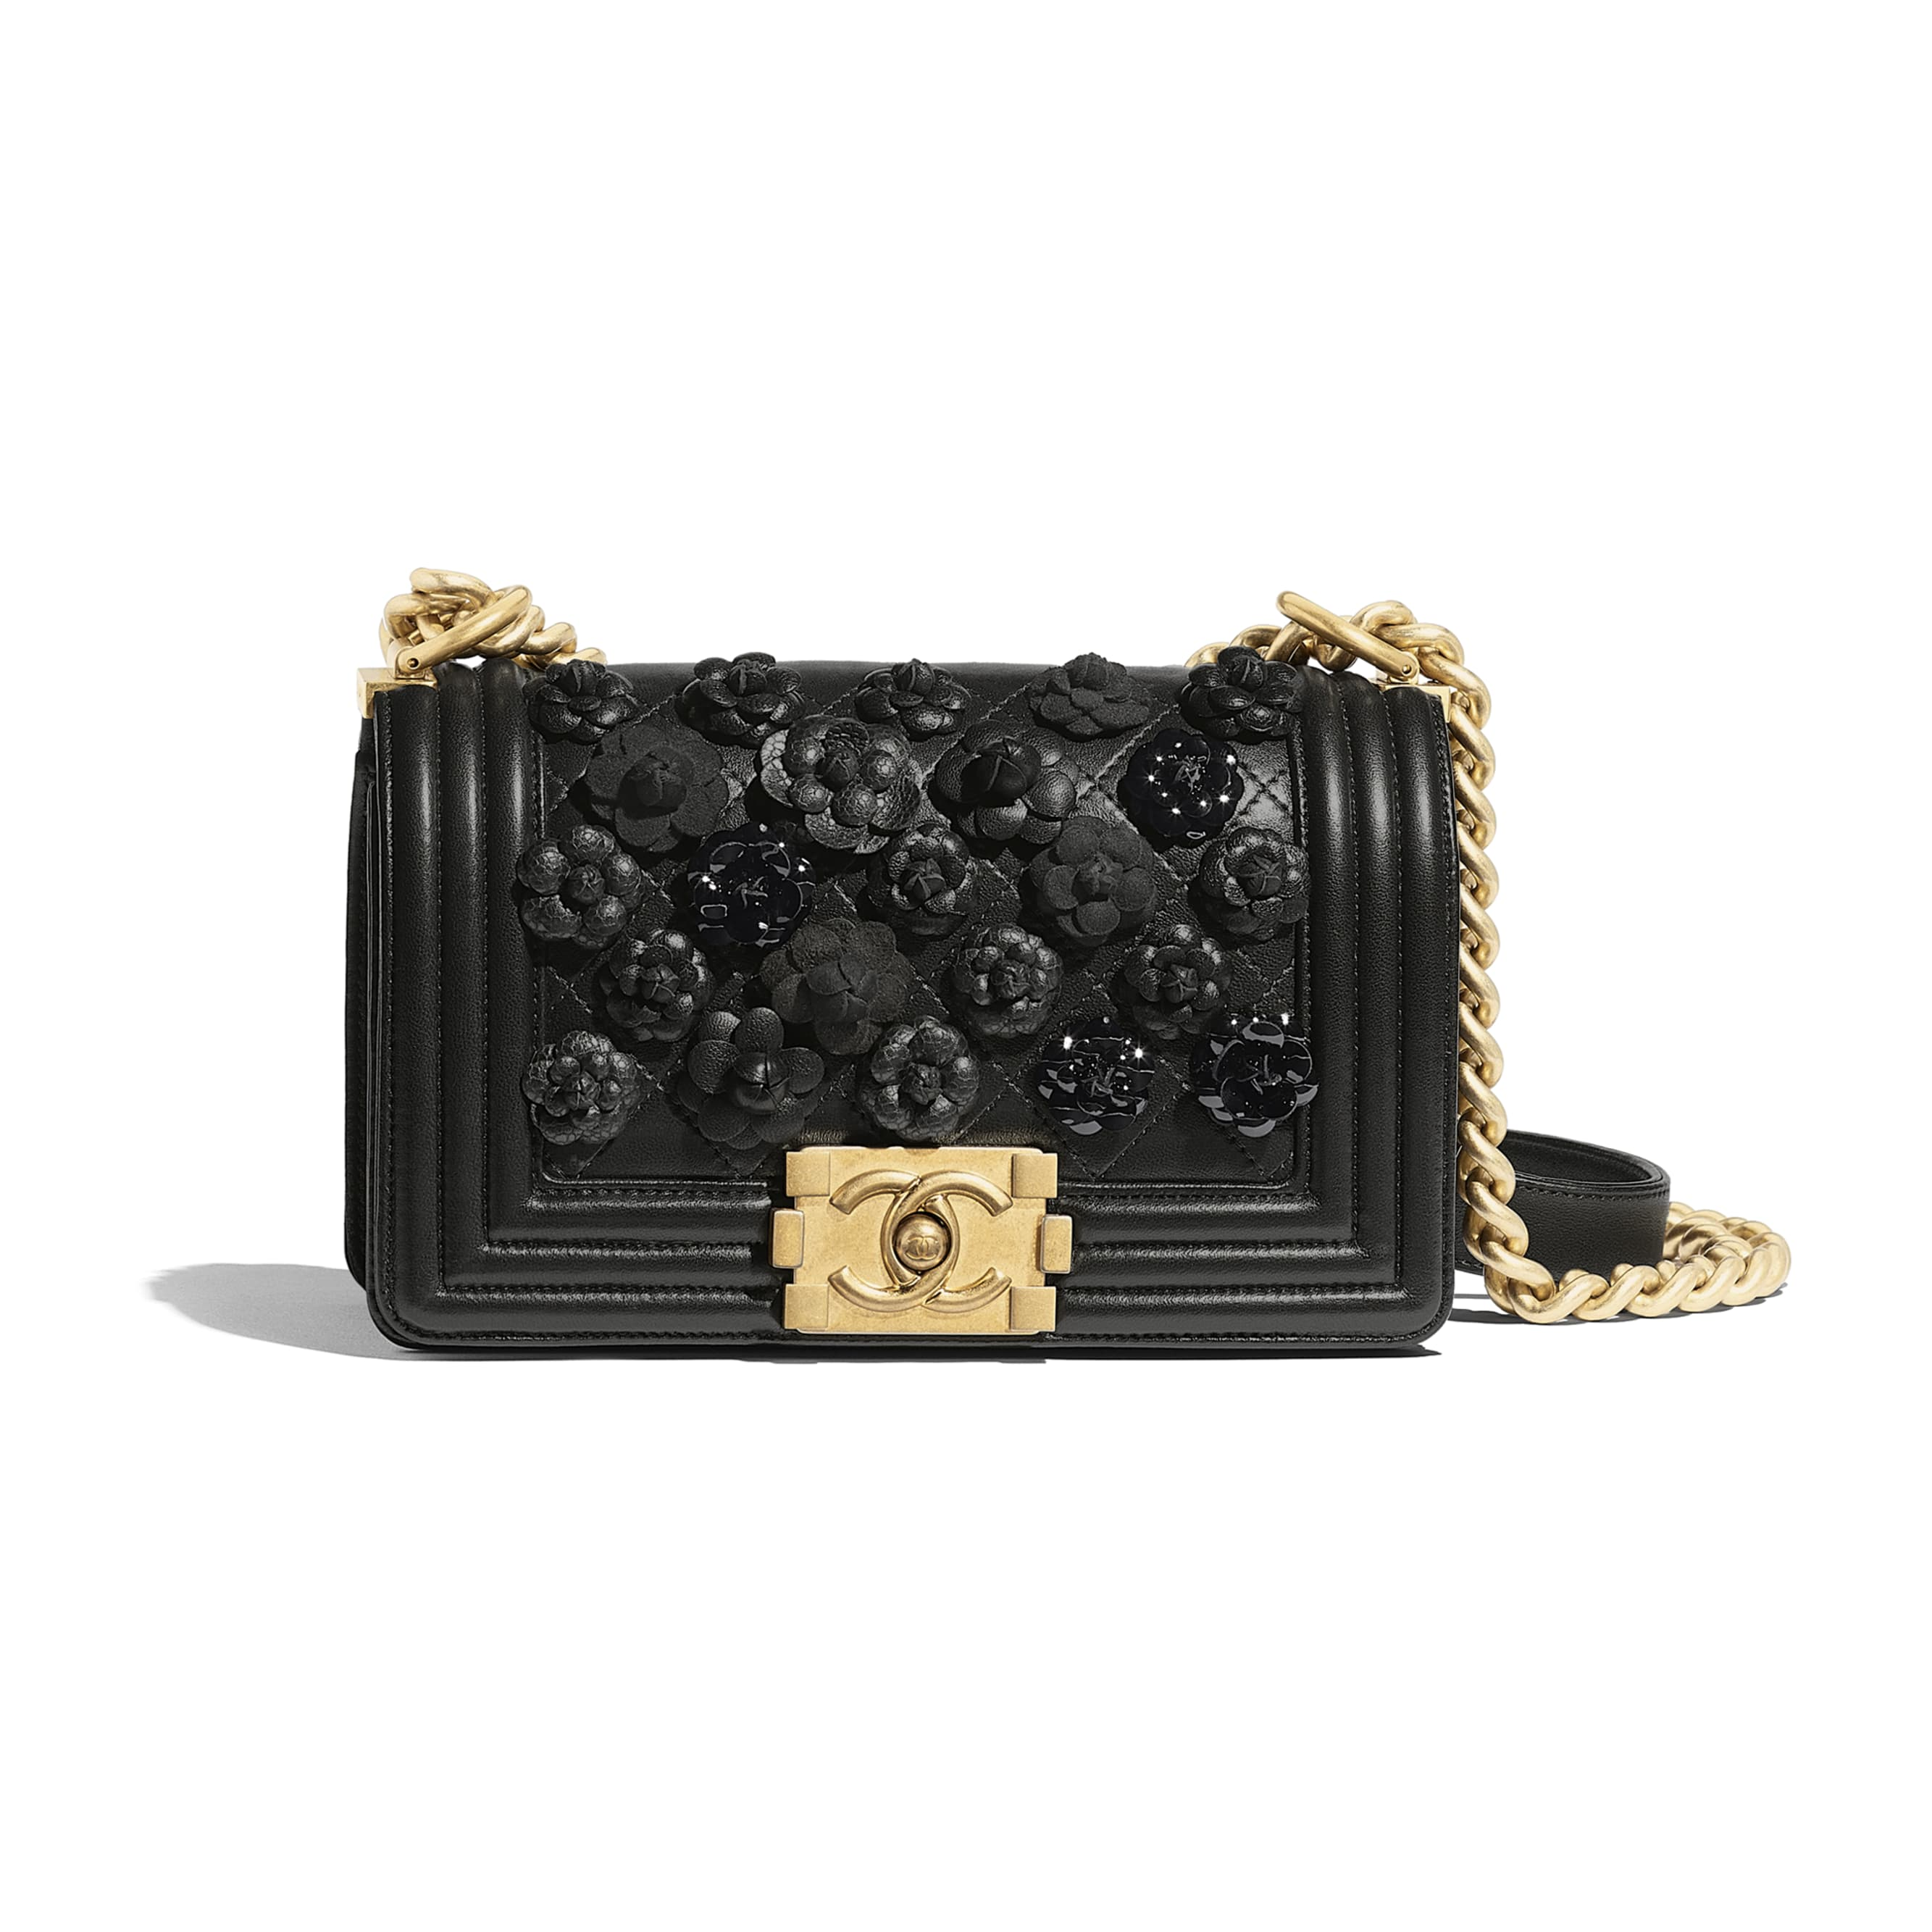 Small BOY CHANEL Handbag - Black - Embroidered Lambskin & Gold-Tone Metal - Default view - see standard sized version